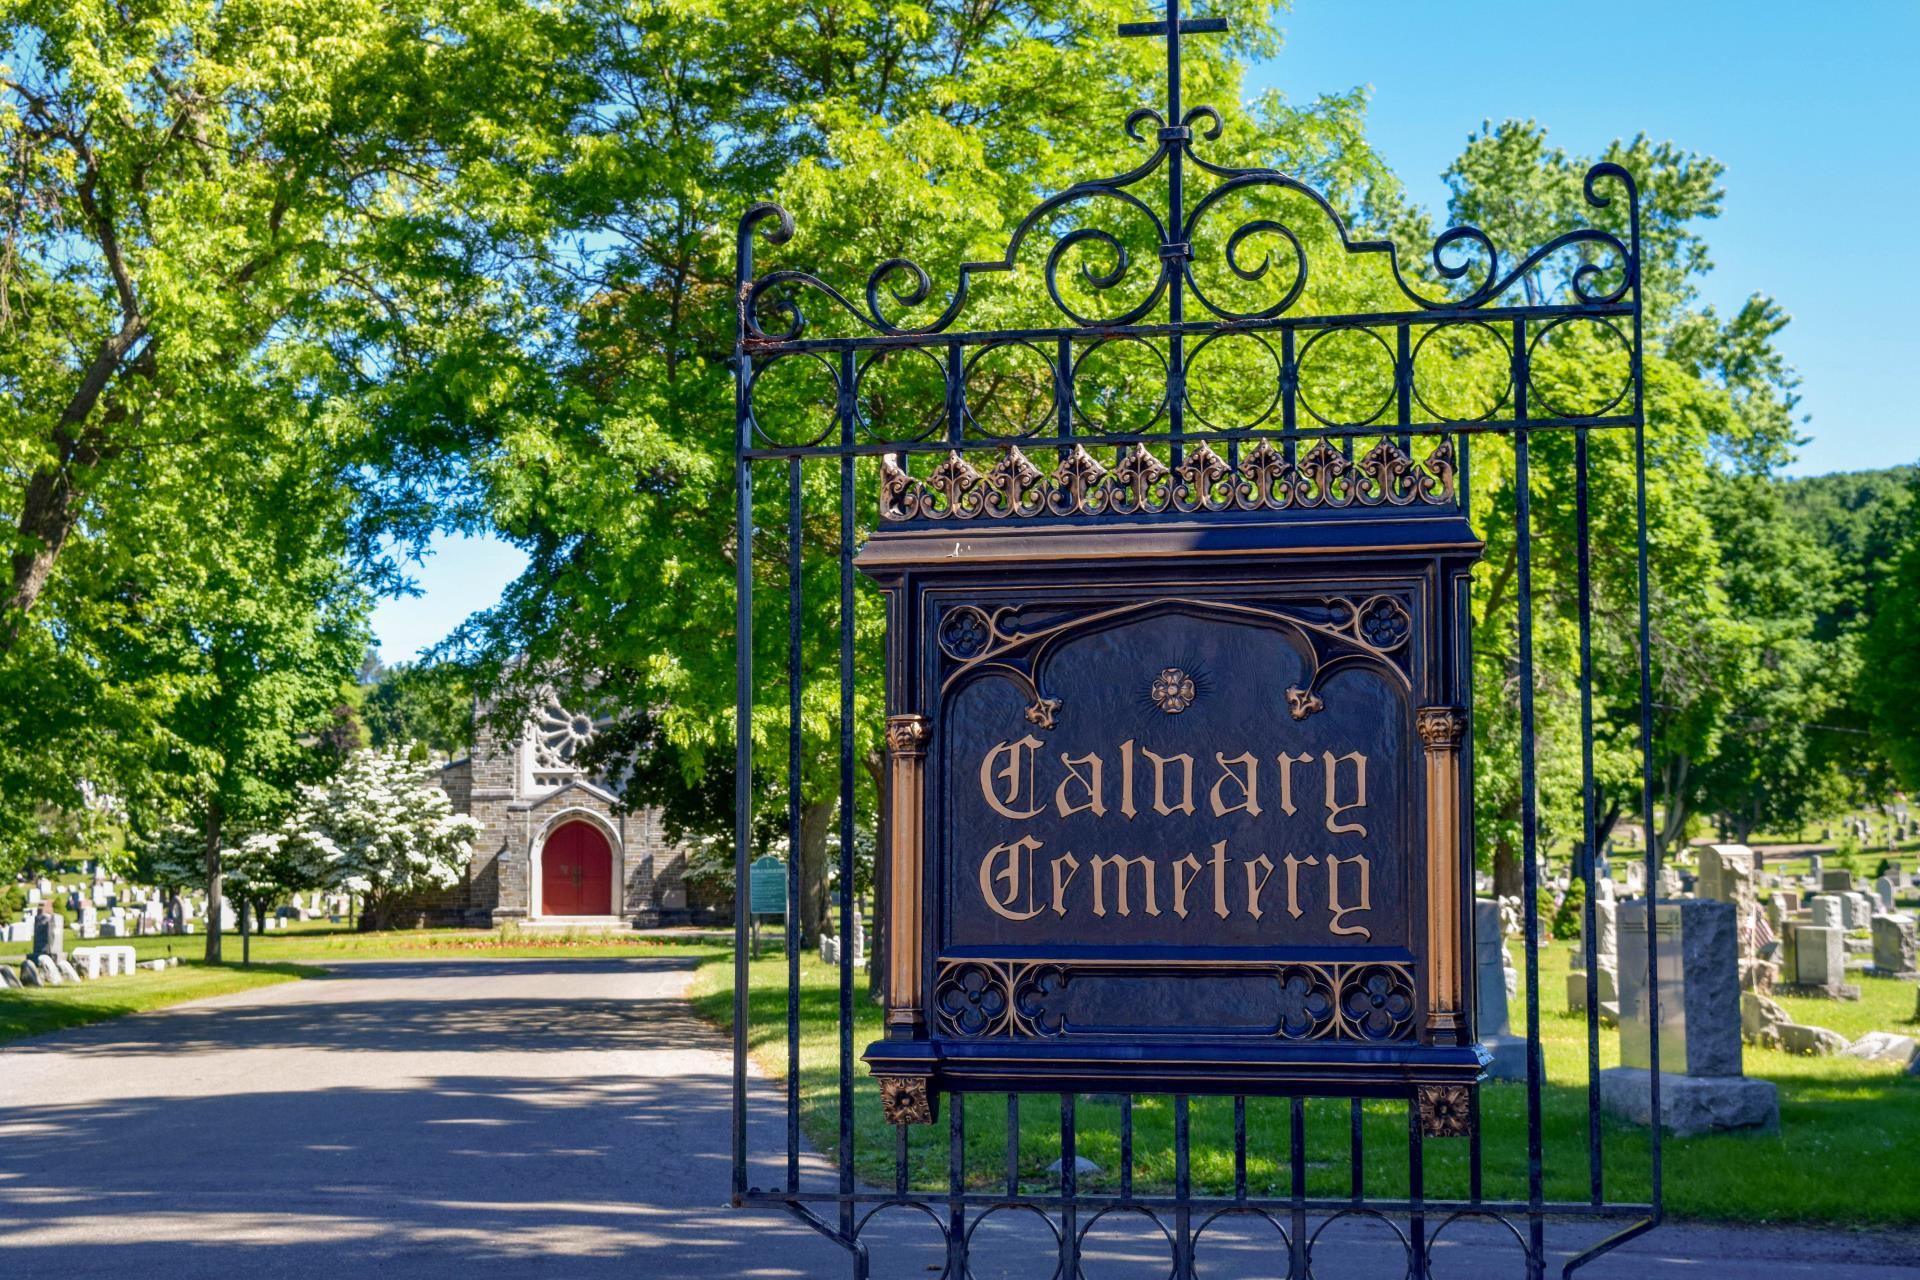 Entrance gate to Calvary Cemetery in Johnson City, NY